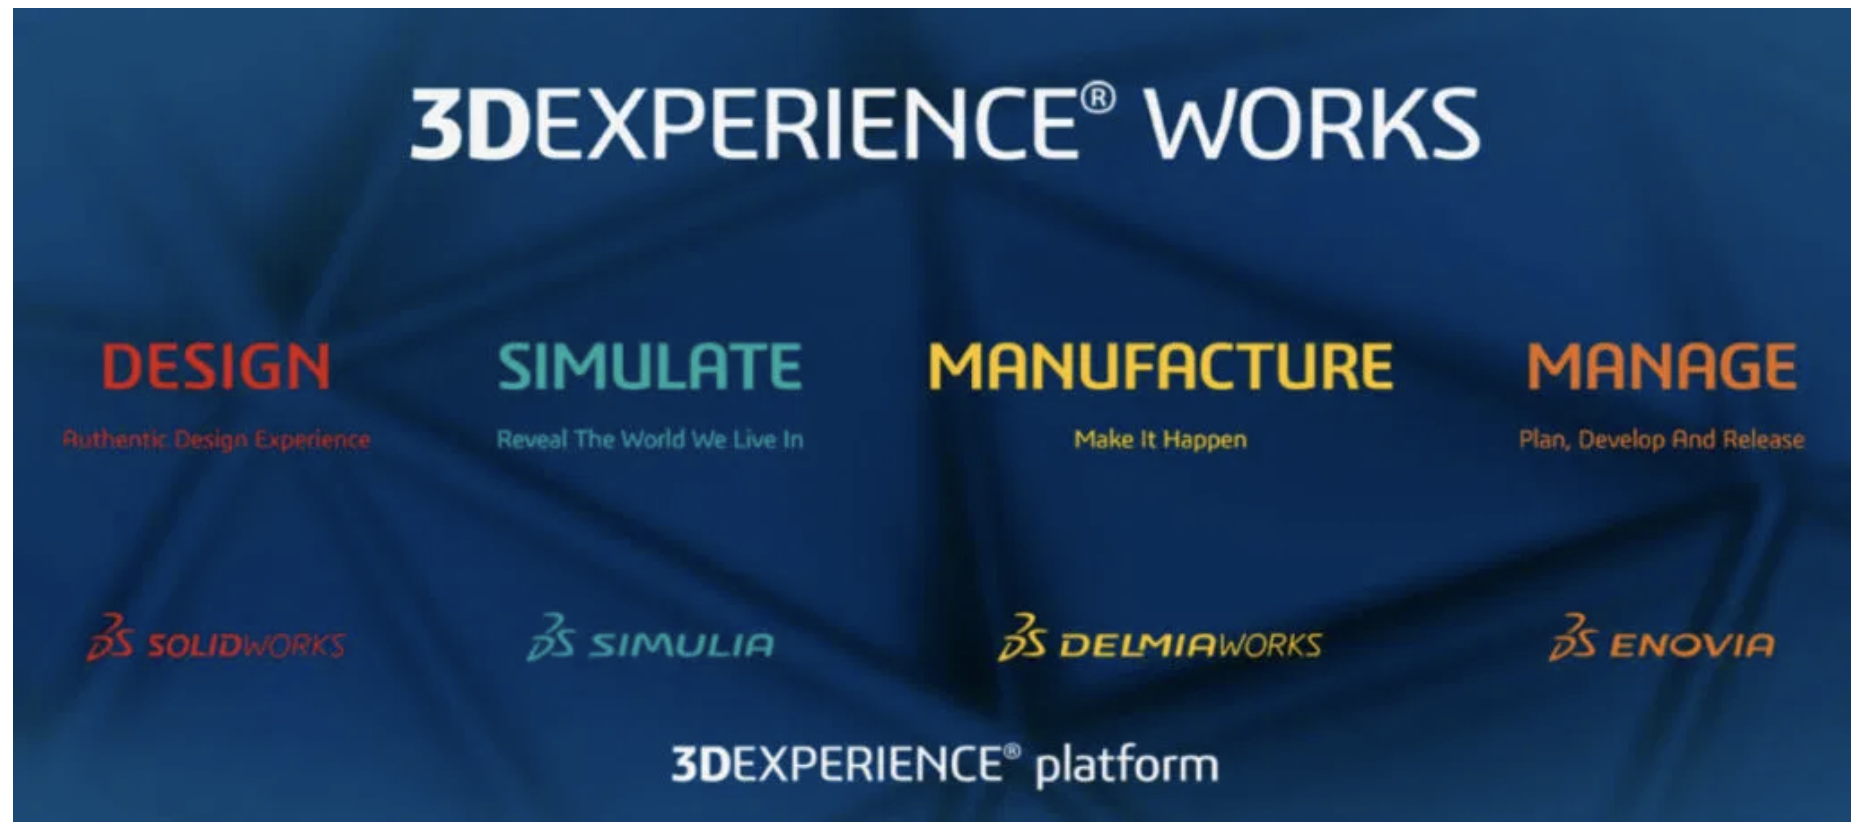 3DExperience.Works : The new Dassault Systèmes solution for SMEs and Startups